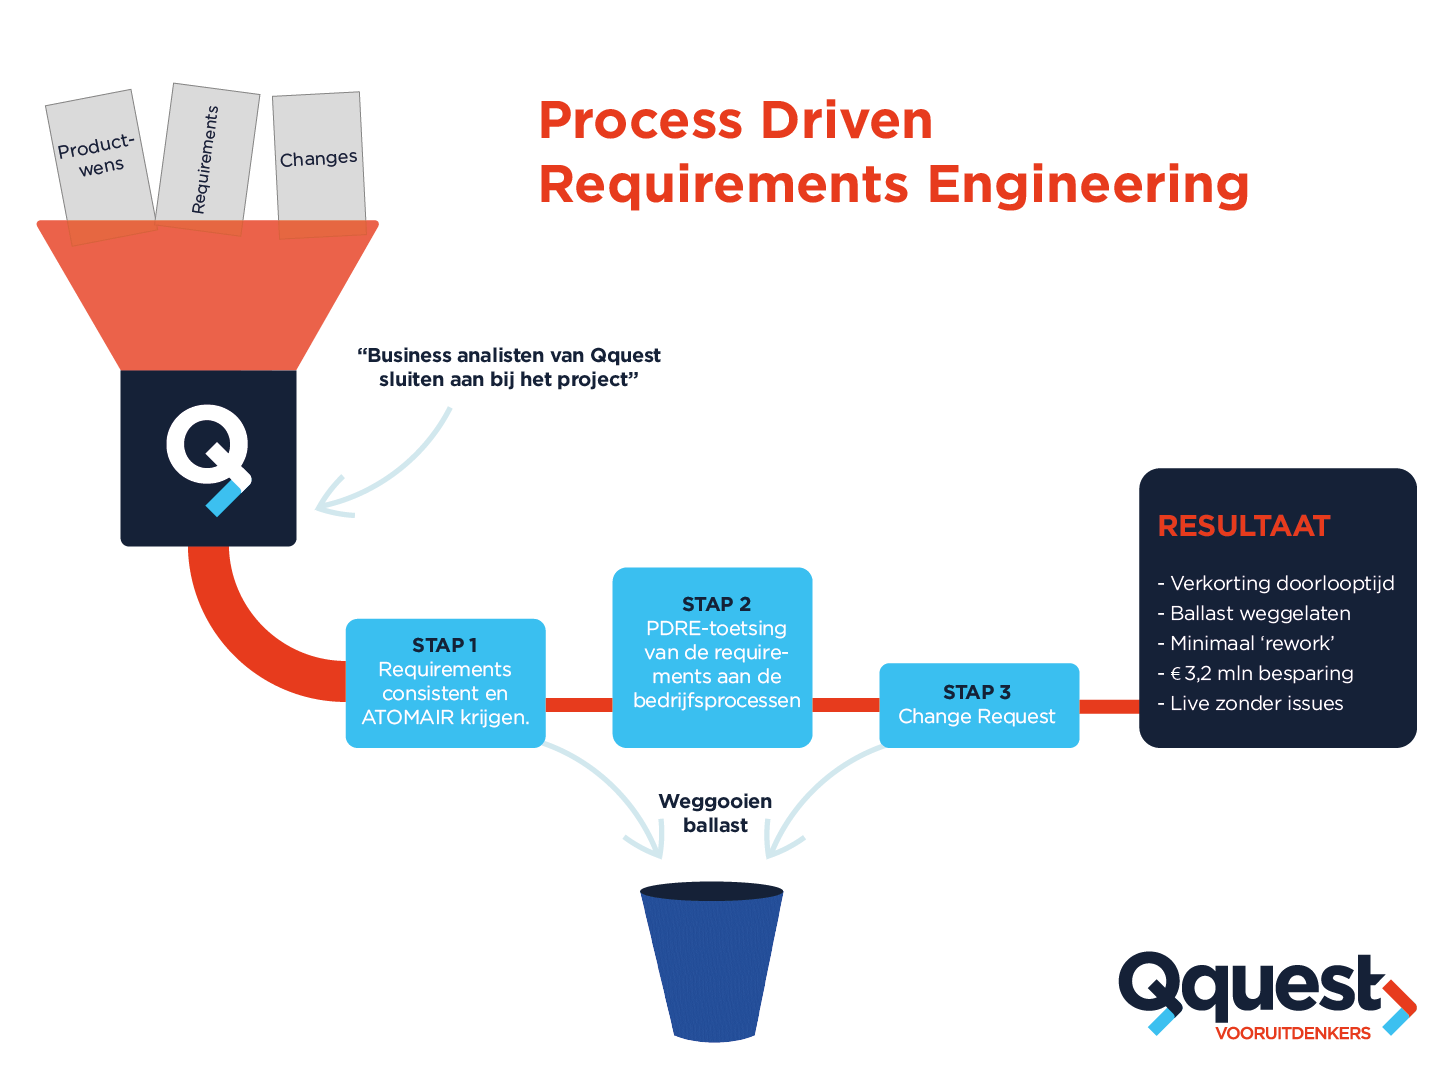 Process Driven Requirements Engineering_Qquest